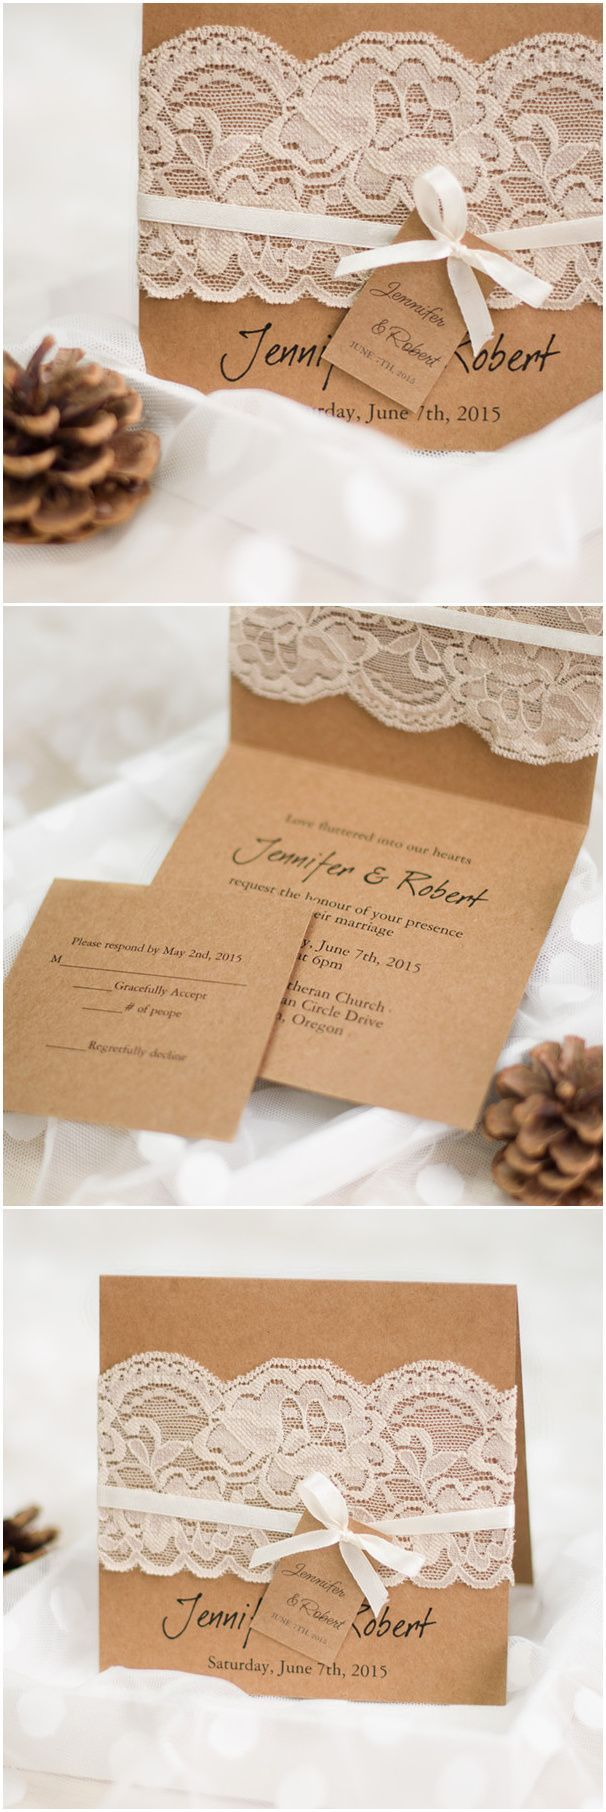 rustic wedding invitations with lace and ribbon